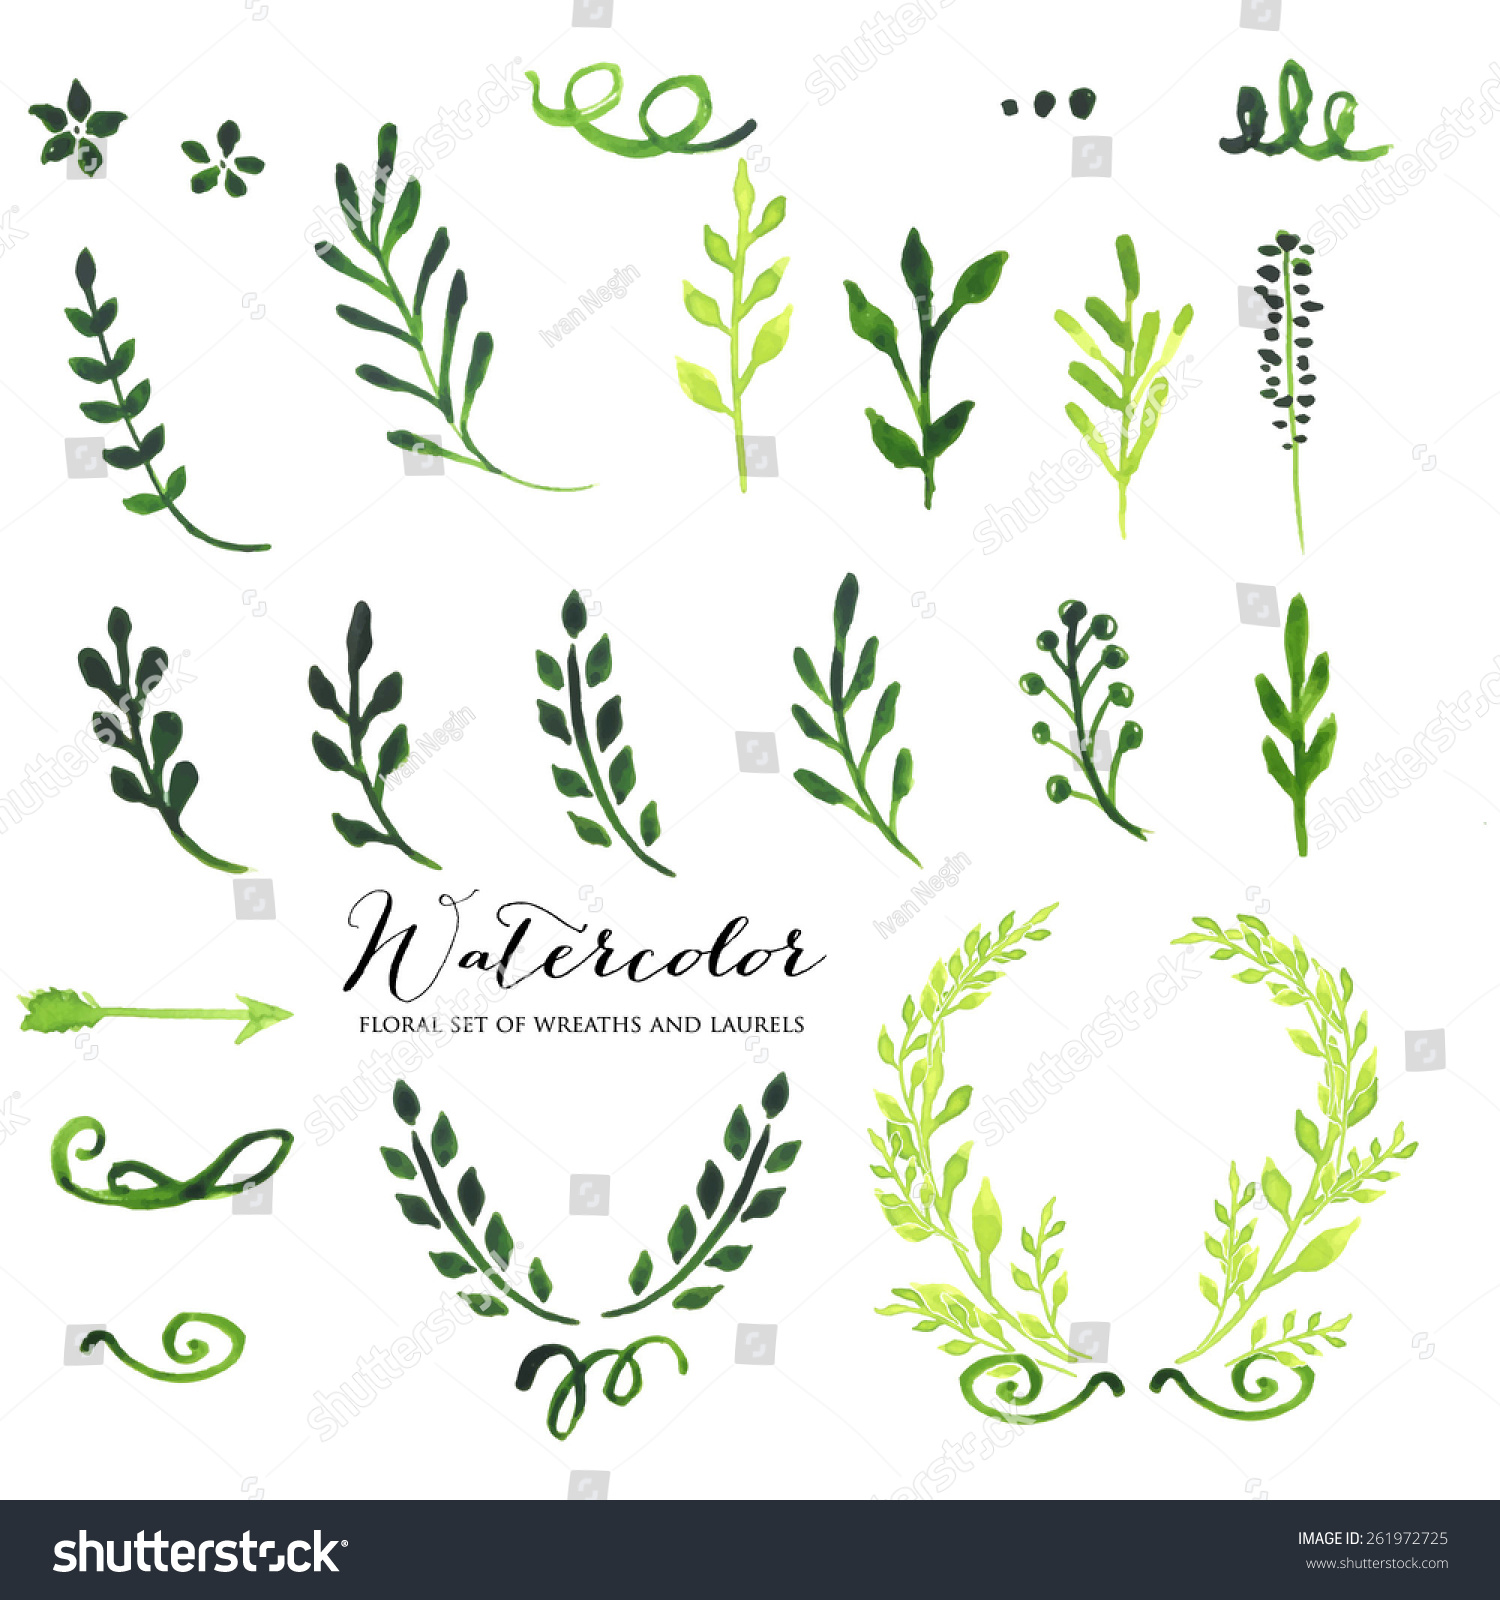 Of Wreaths Watercolor Vintage Floral Set Wreaths Laurels Stock Vector